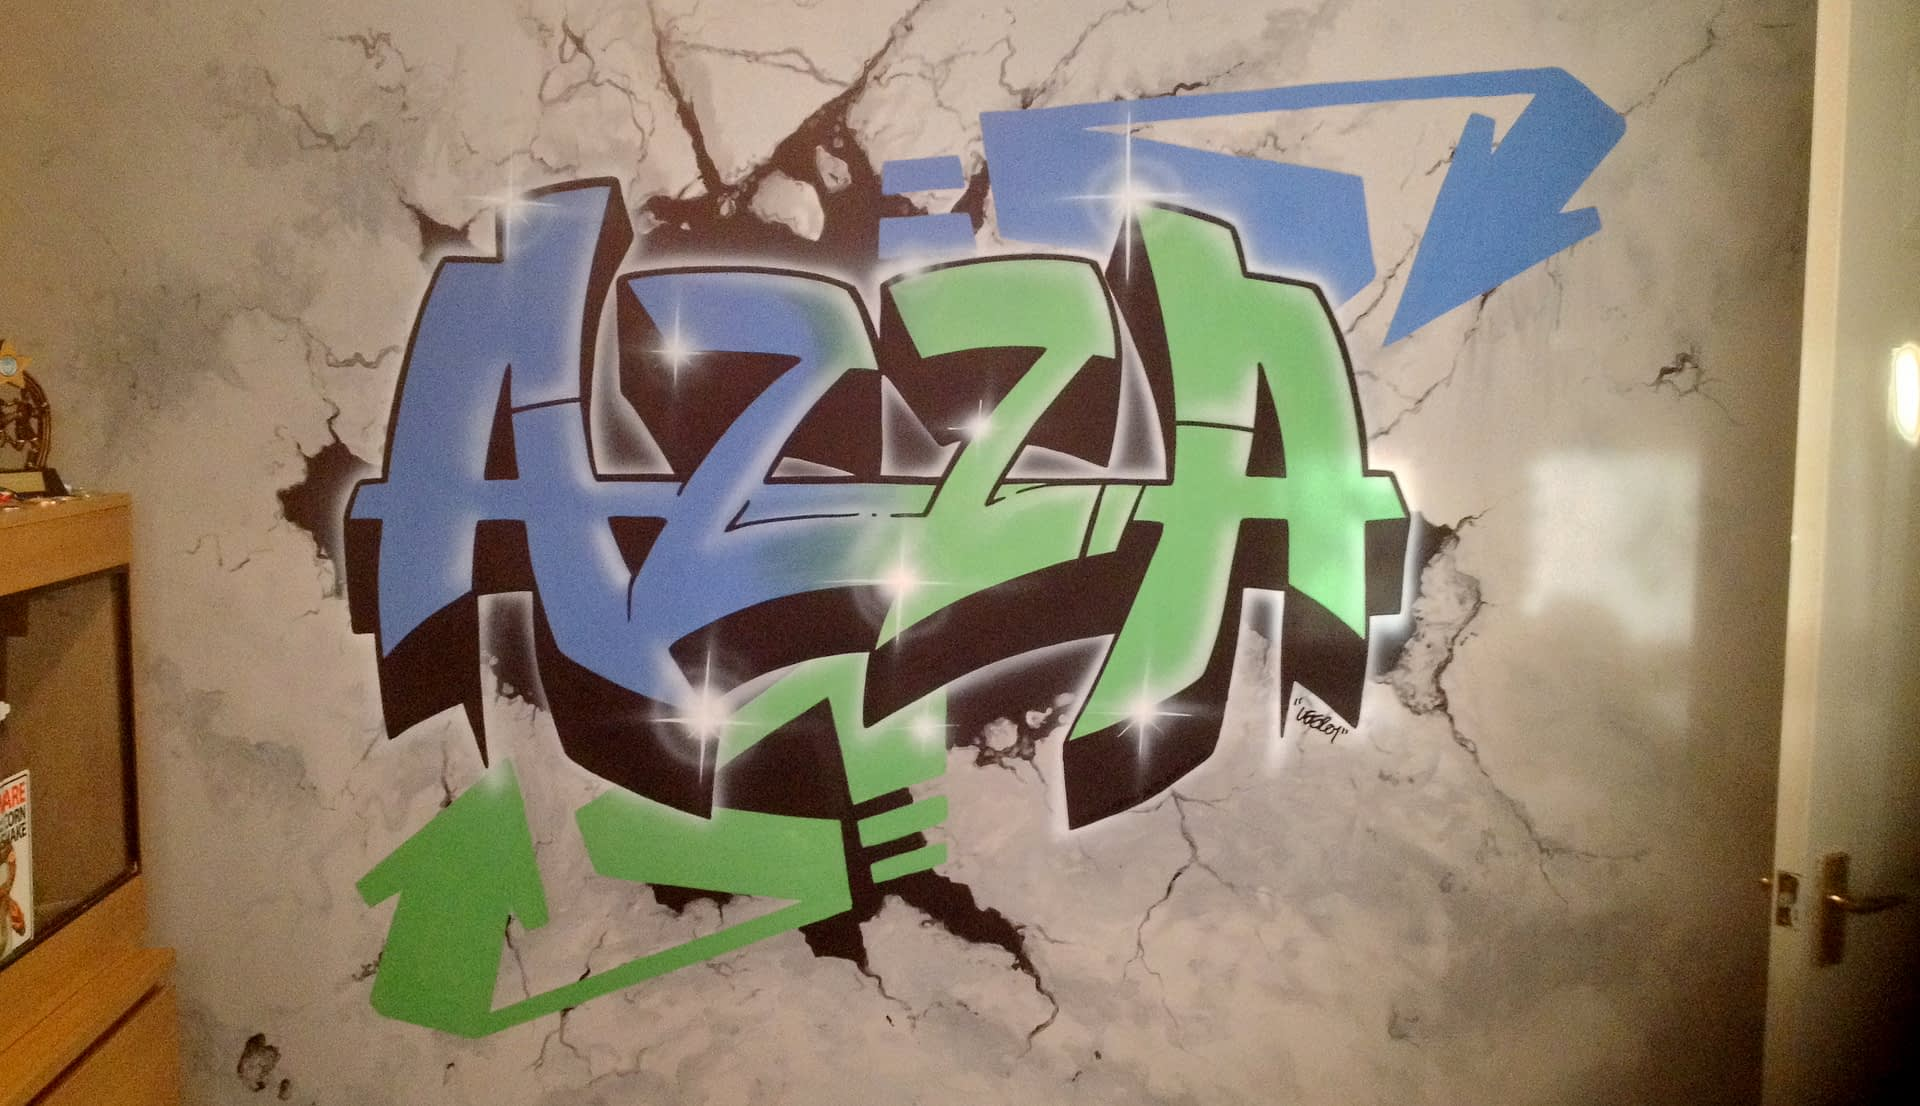 Azza Custom Graffiti